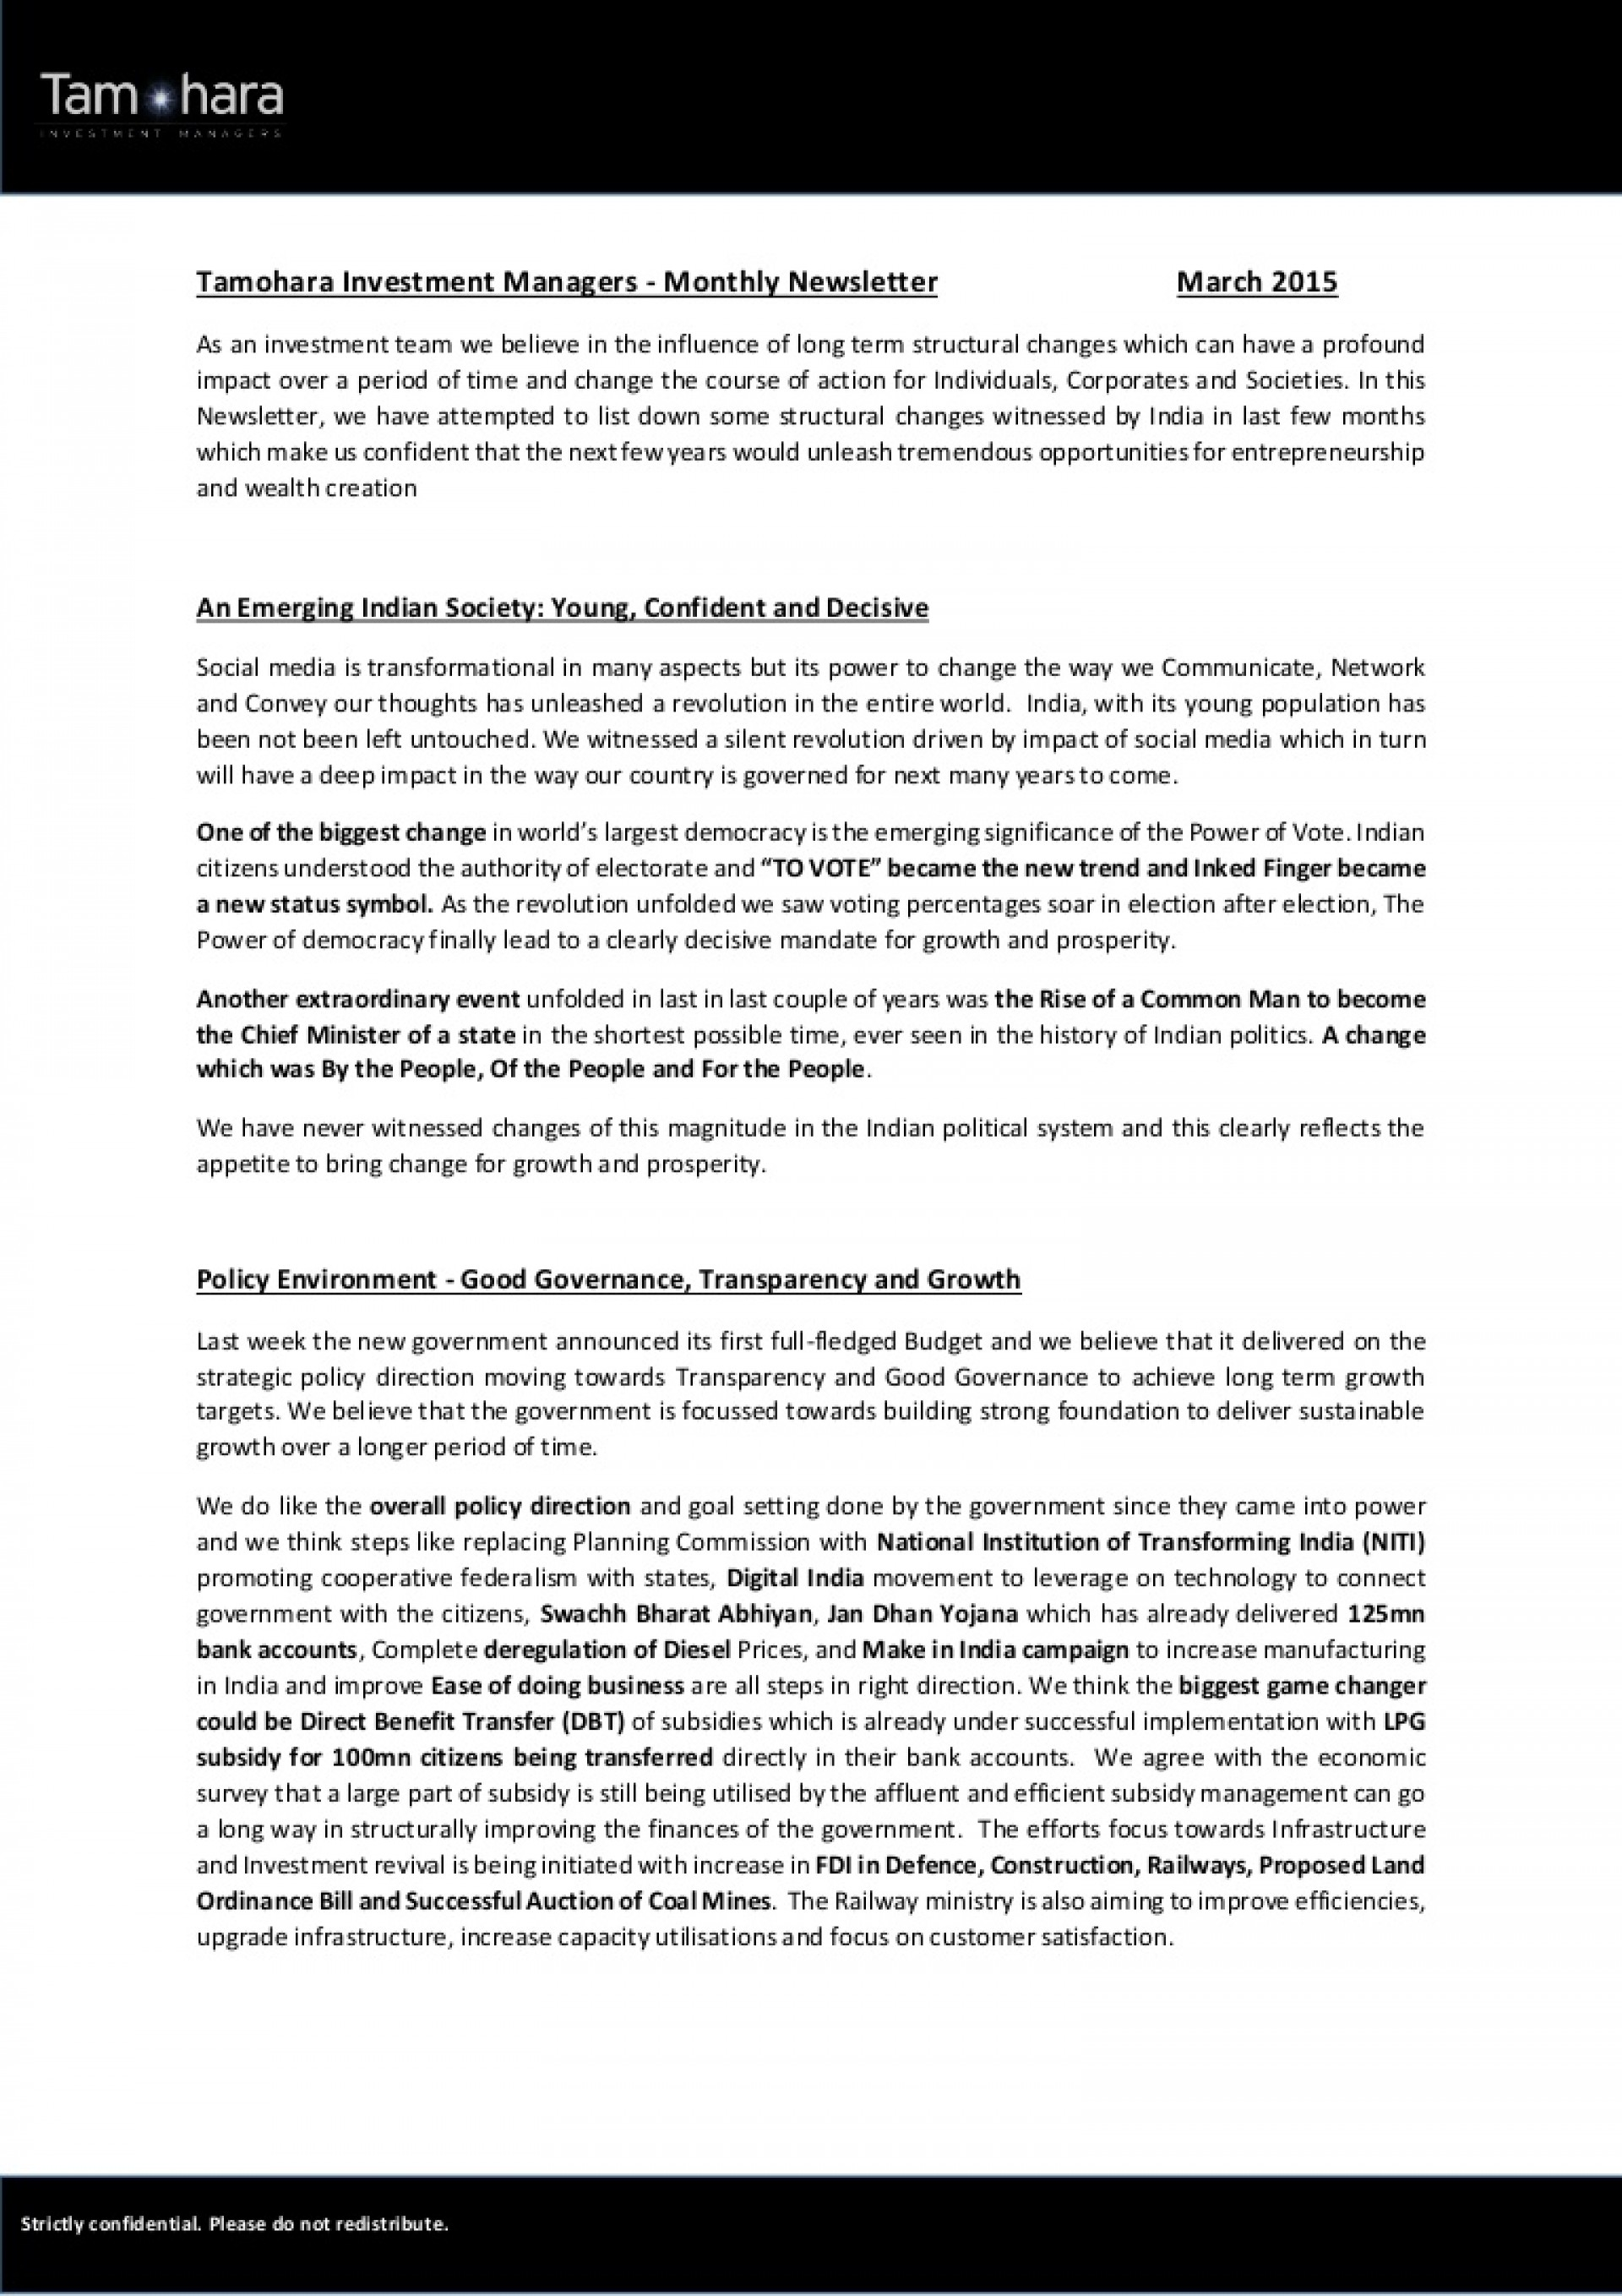 013 Essay Example Tamoharainvestmentnewsletter Mar2015 Conversion Gate01 Thumbnail How To Make Outstanding A Longer An Period Trick Mac Phrases My Narrative 1920